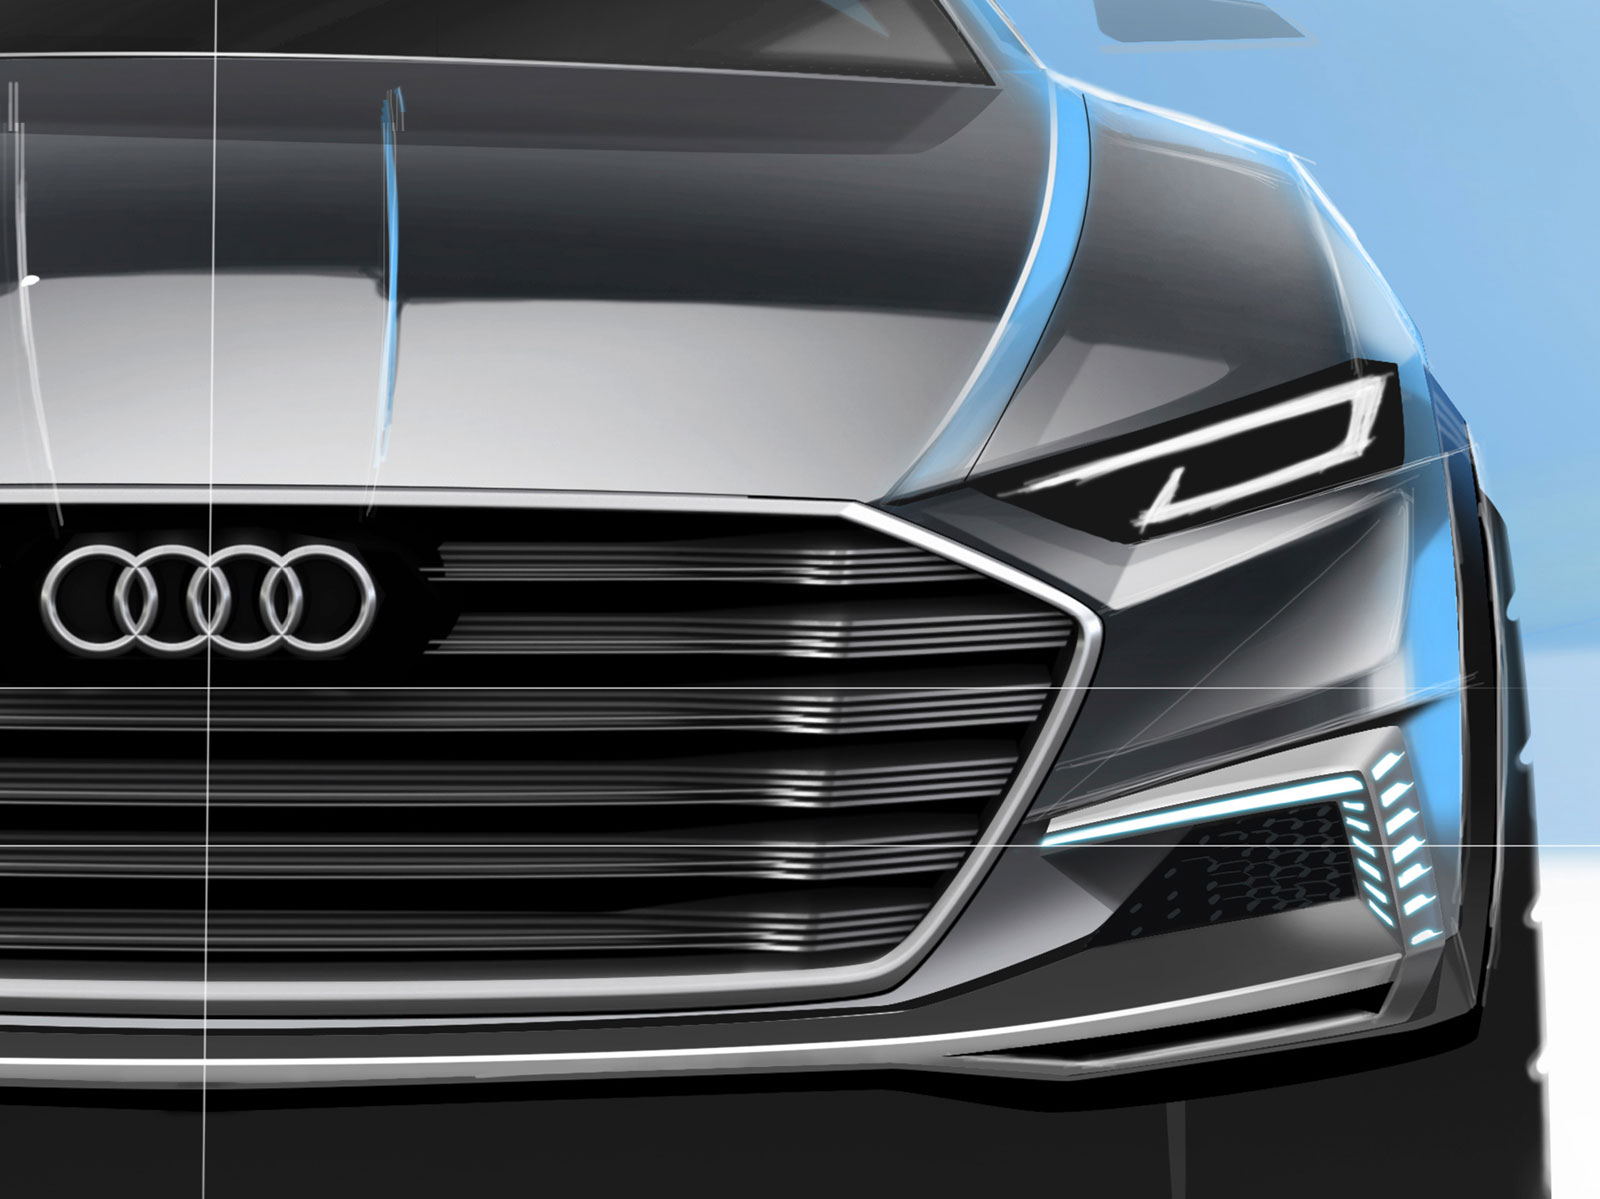 Audi Prologue Allroad Concept Design Sketch Render